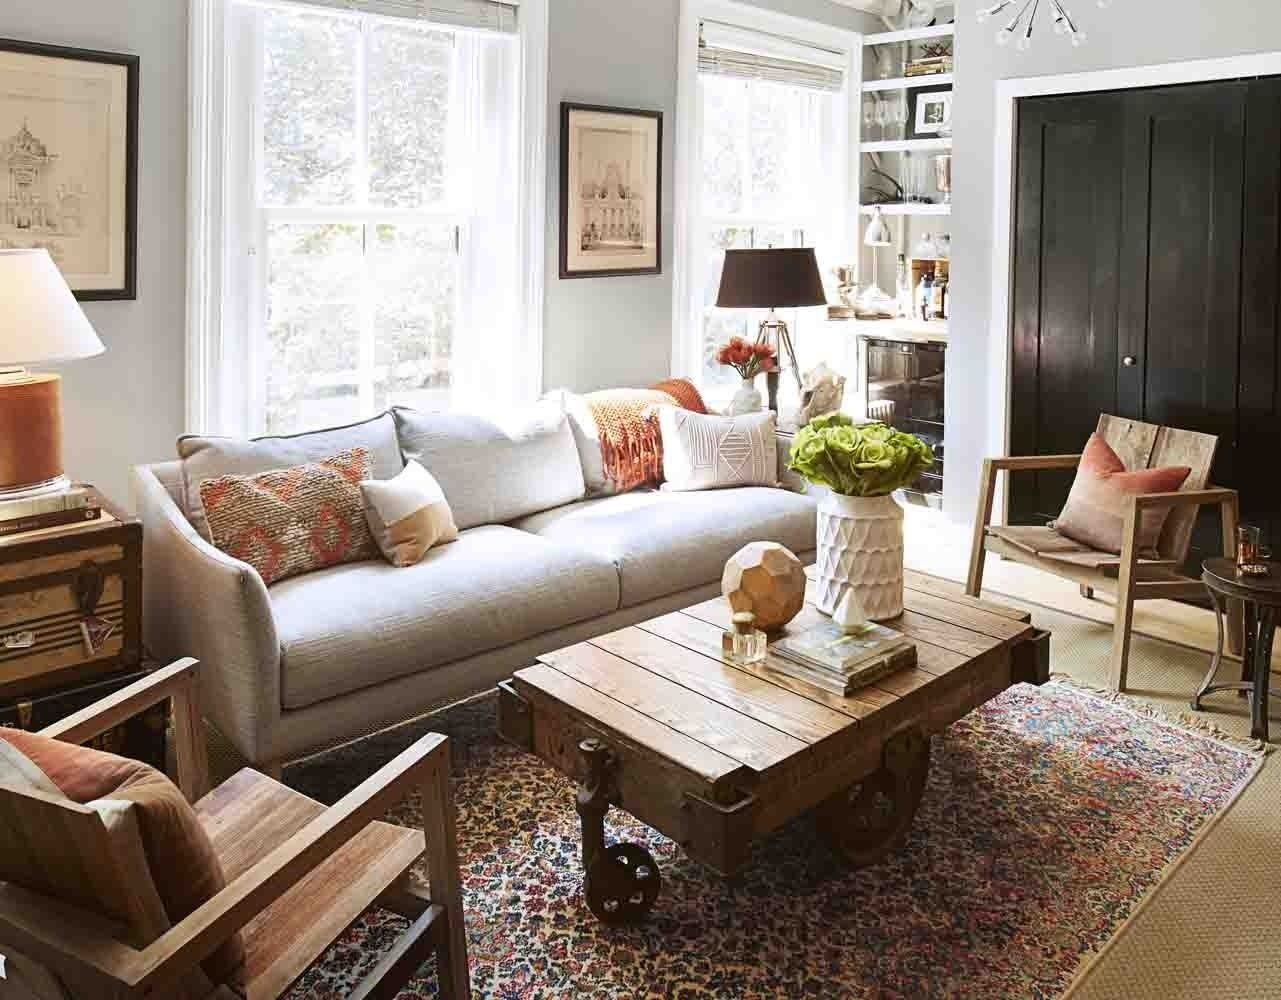 10 Most Recommended Living Room Interior Decorating Ideas 51 best living room ideas stylish living room decorating designs 13 2020